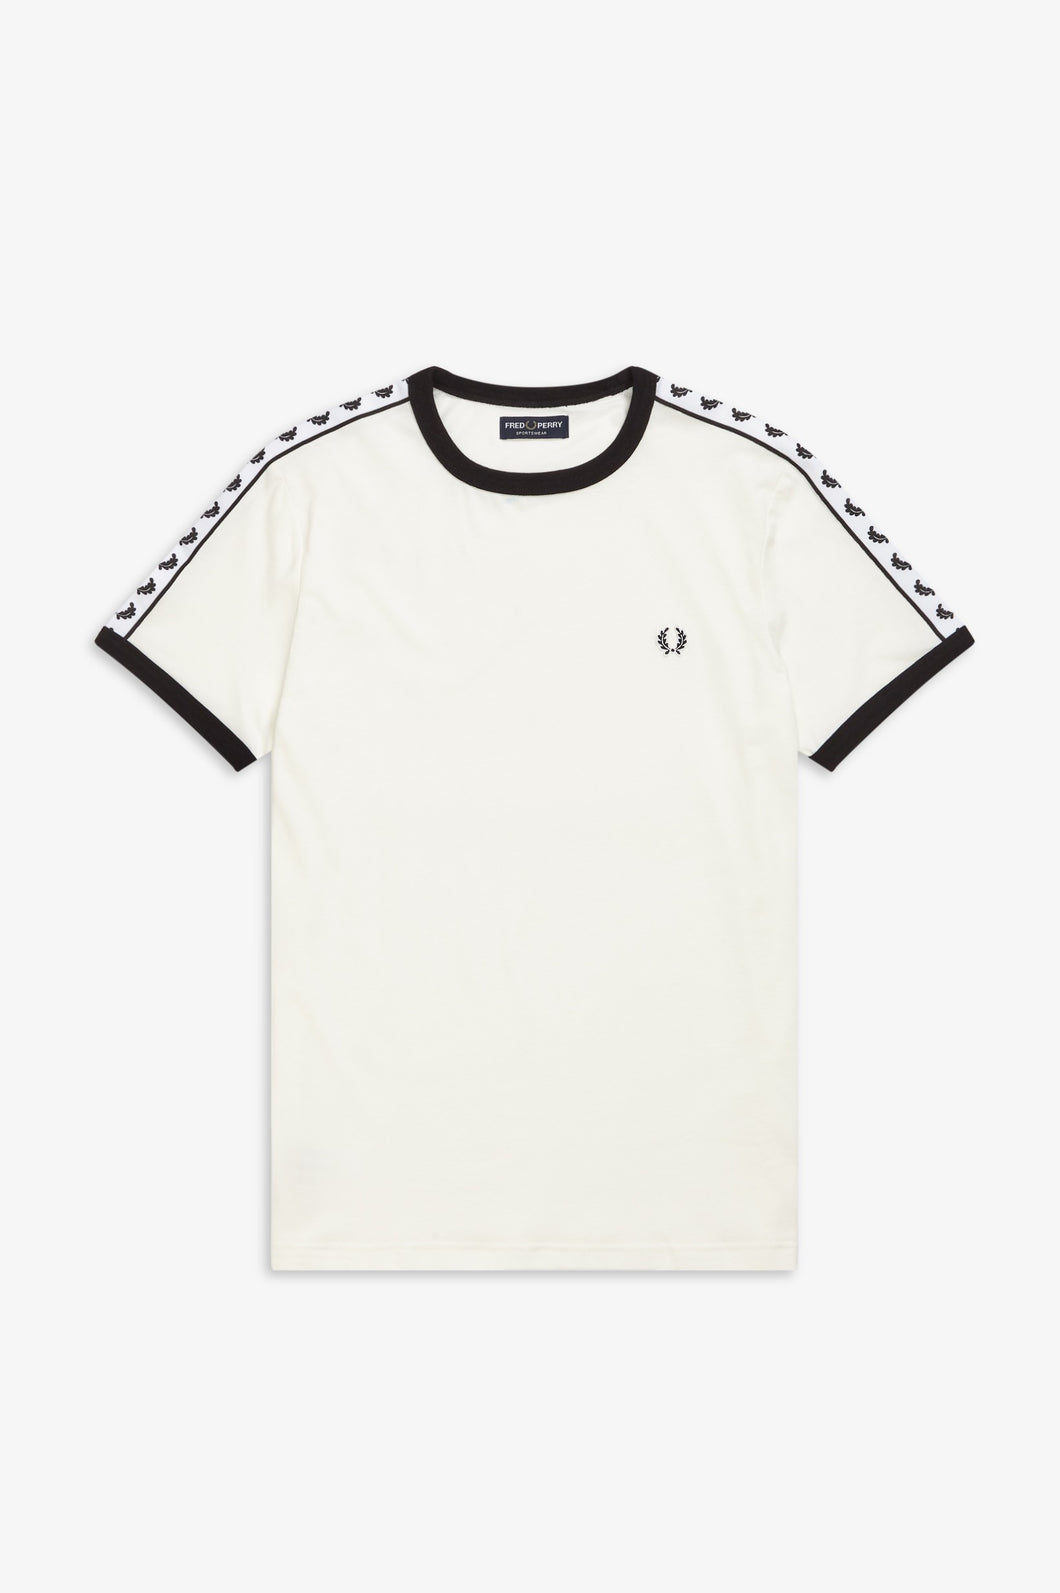 Fred Perry - Taped Ringer - T-Shirt - Snow White / Carbon Blue - M6347 - B34